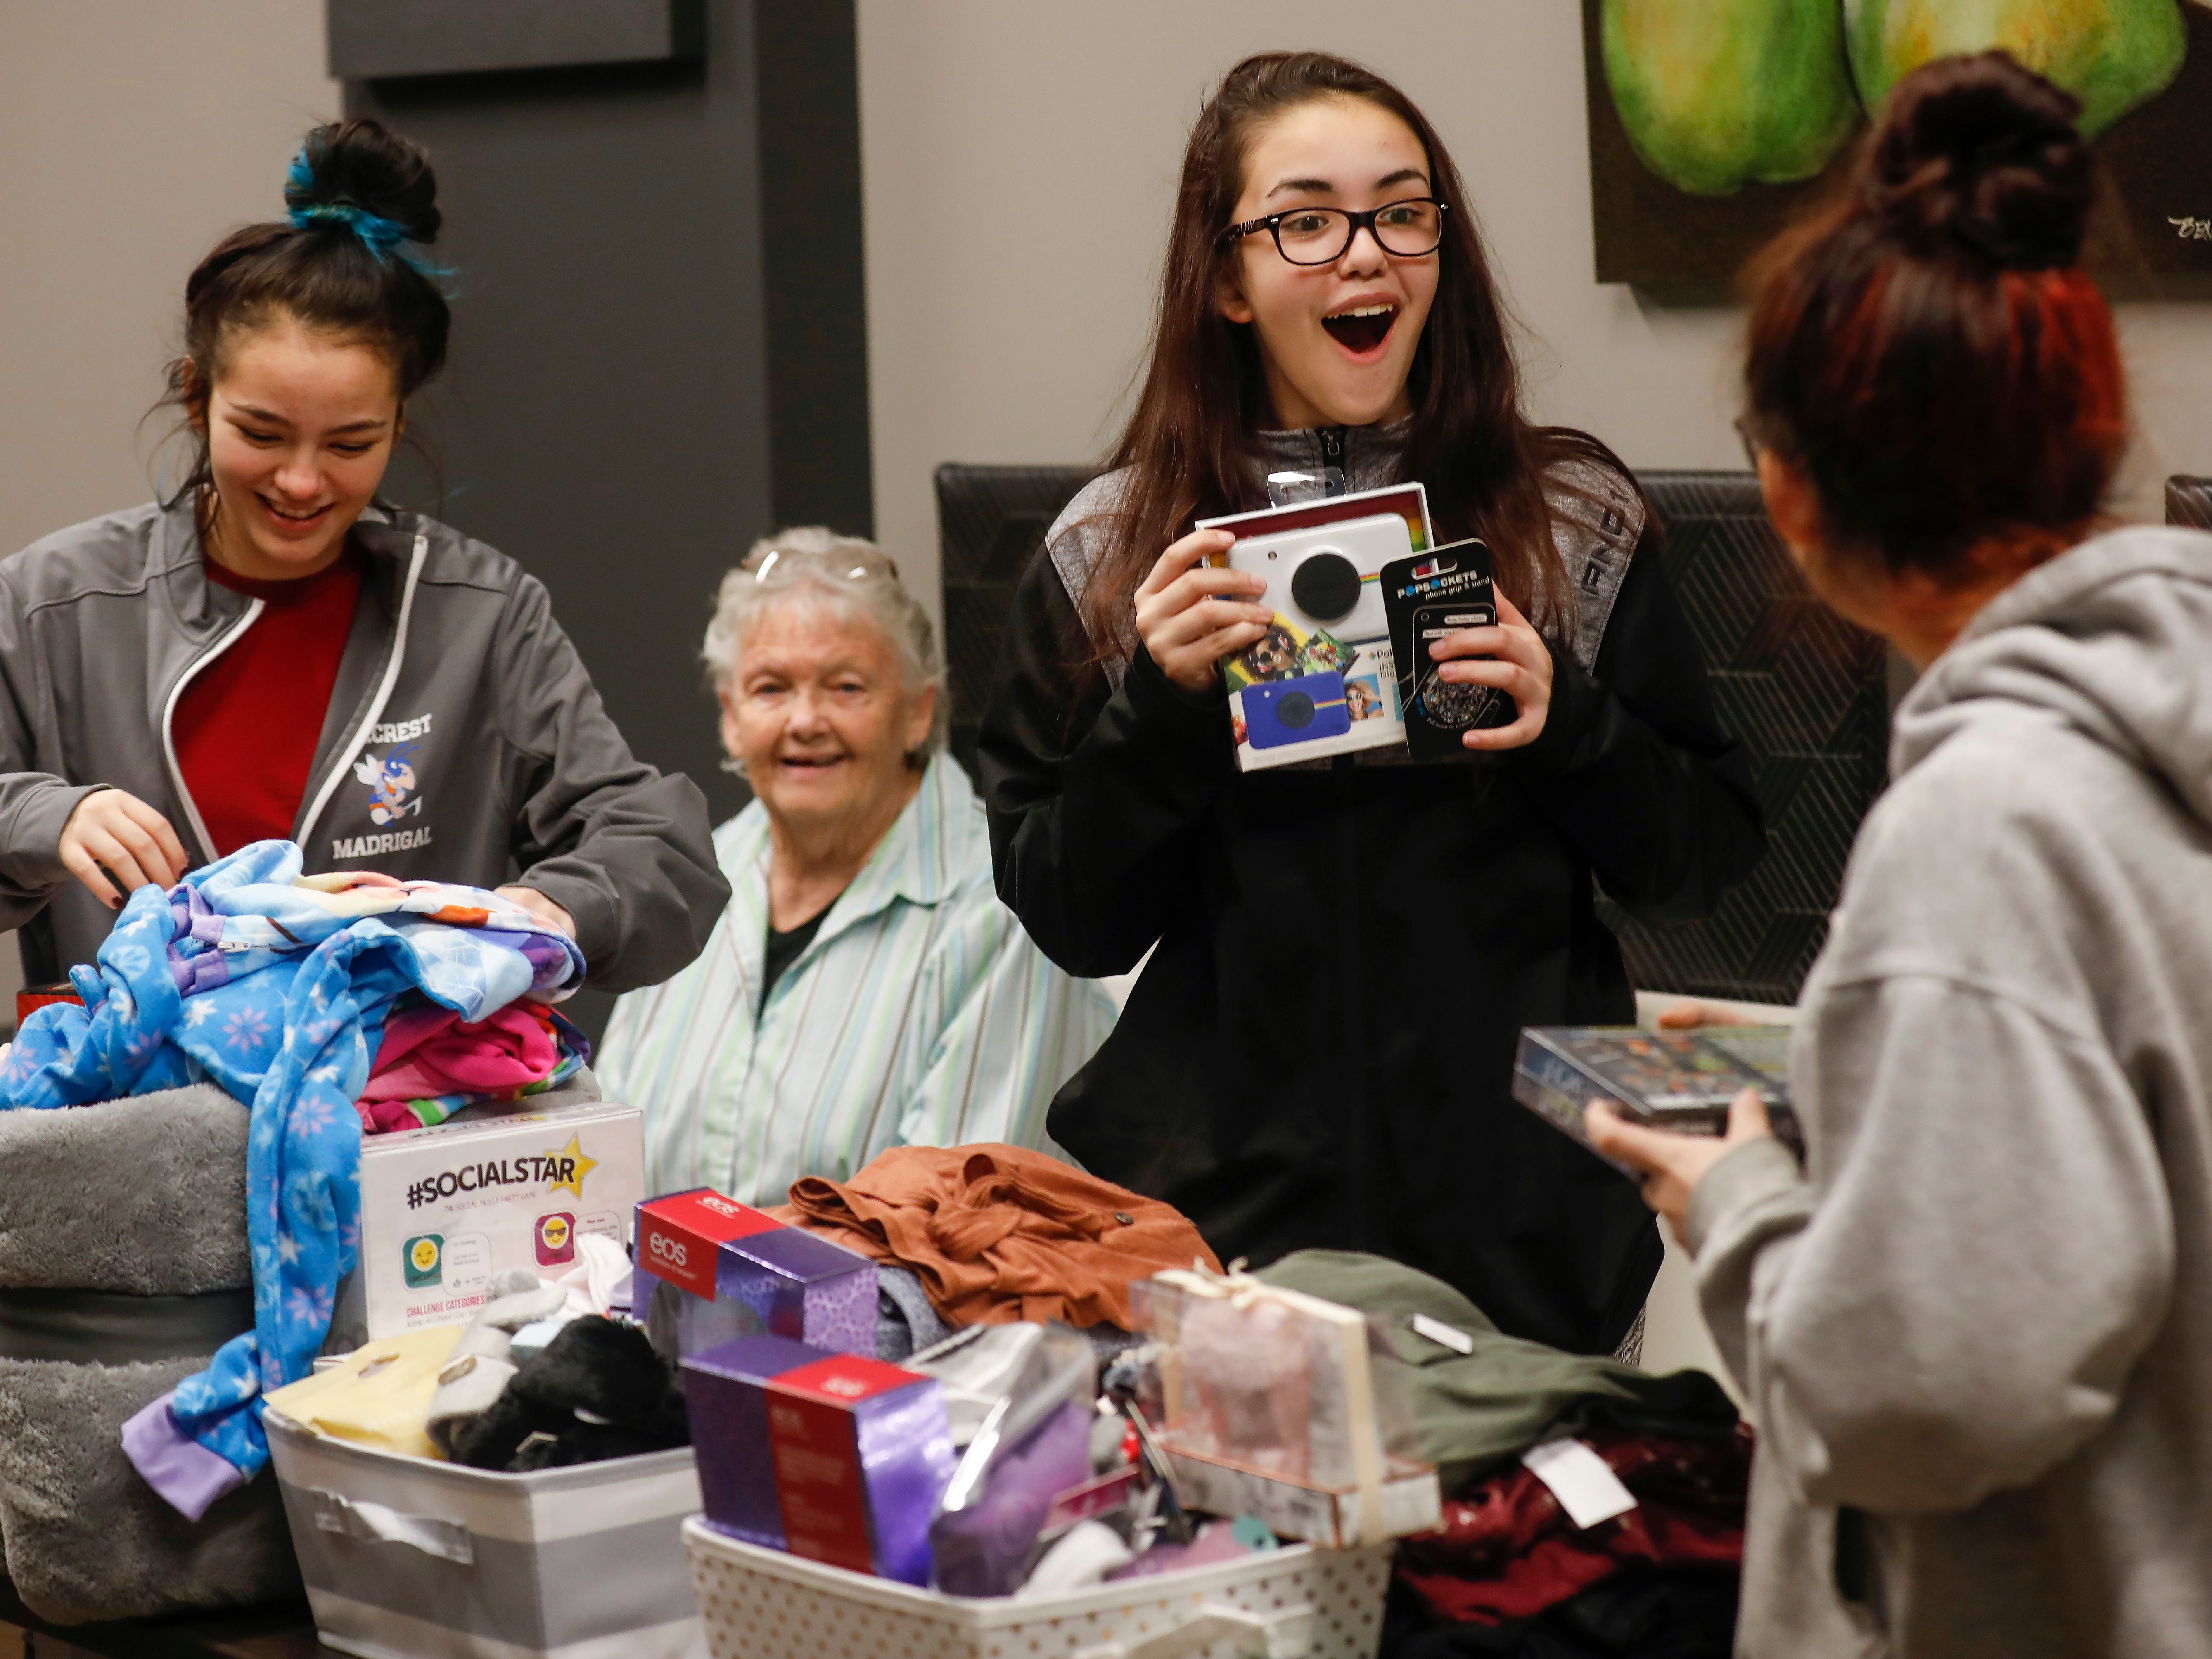 Abigail Sahagun, center, reacts as she looks at gifts that were given to her and her sisters Callie, right, and Emileigh by employees of J.D. Byrider on Wednesday, Dec. 19, 2018. The Sahaguns' grandmother, Barbara Foster, was killed during a road rage incident on Nov. 20.